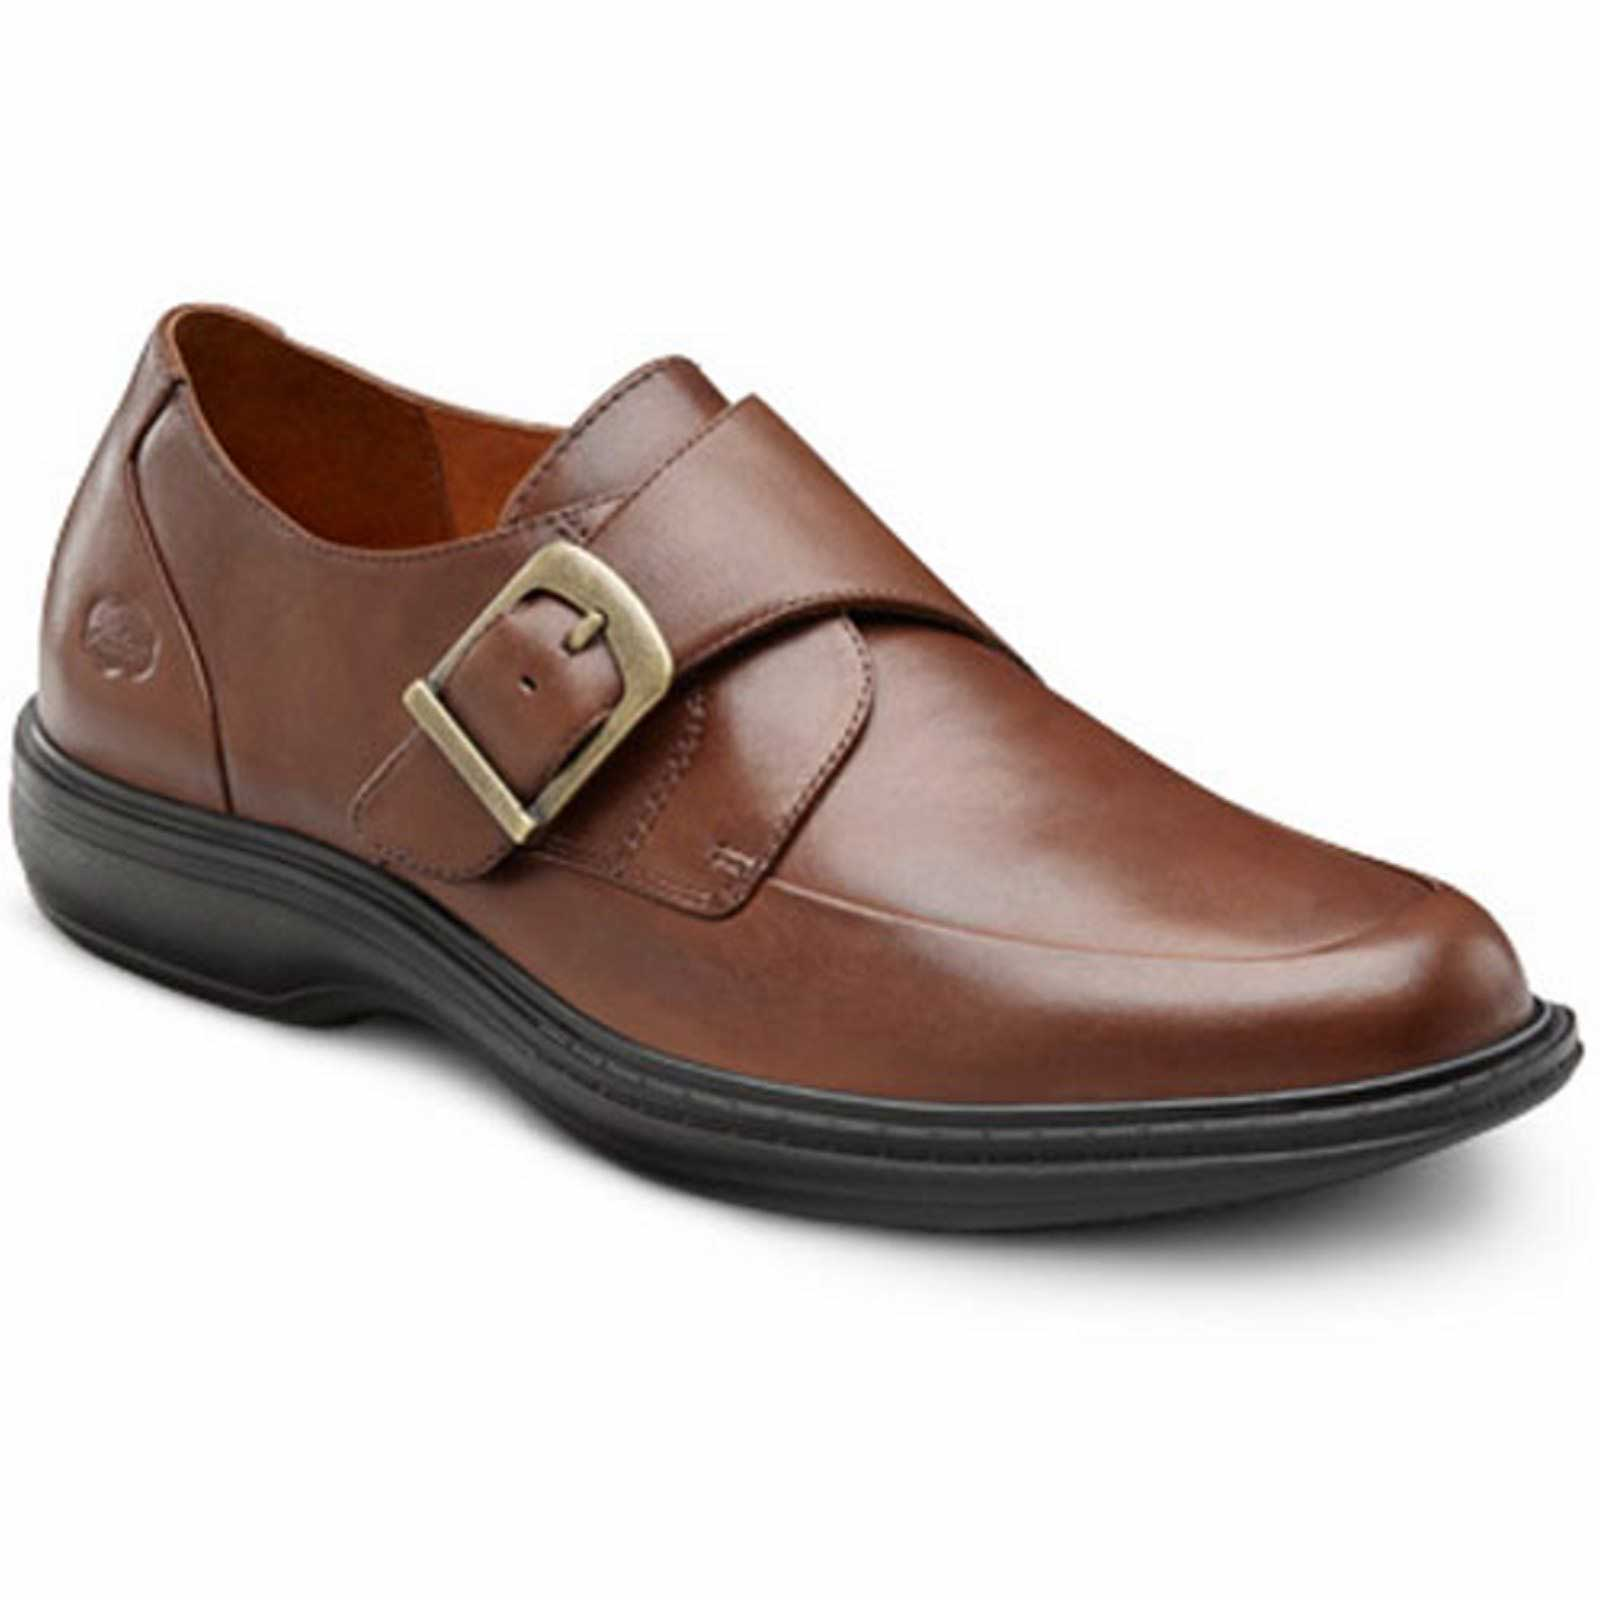 Details about Dr Comfort Leader Men's Therapeutic Diabetic Dress Shoe